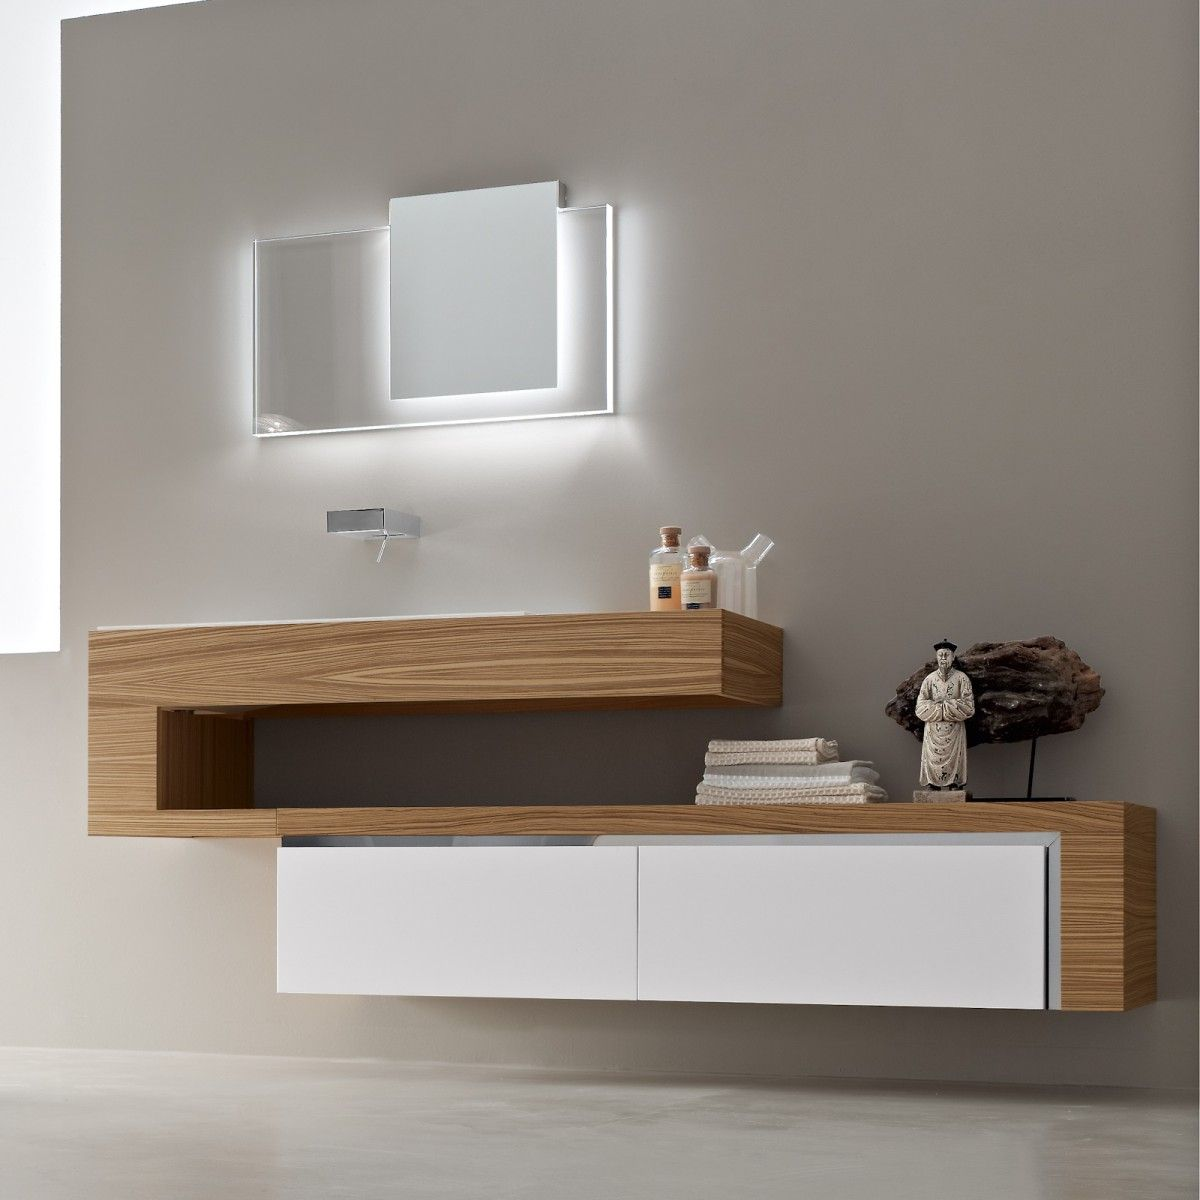 ultra modern italian bathroom design with nice wall mount vanity with cool pattern and chic mirror design ideas of italian vanity design - Bathroom Vanity Design Ideas